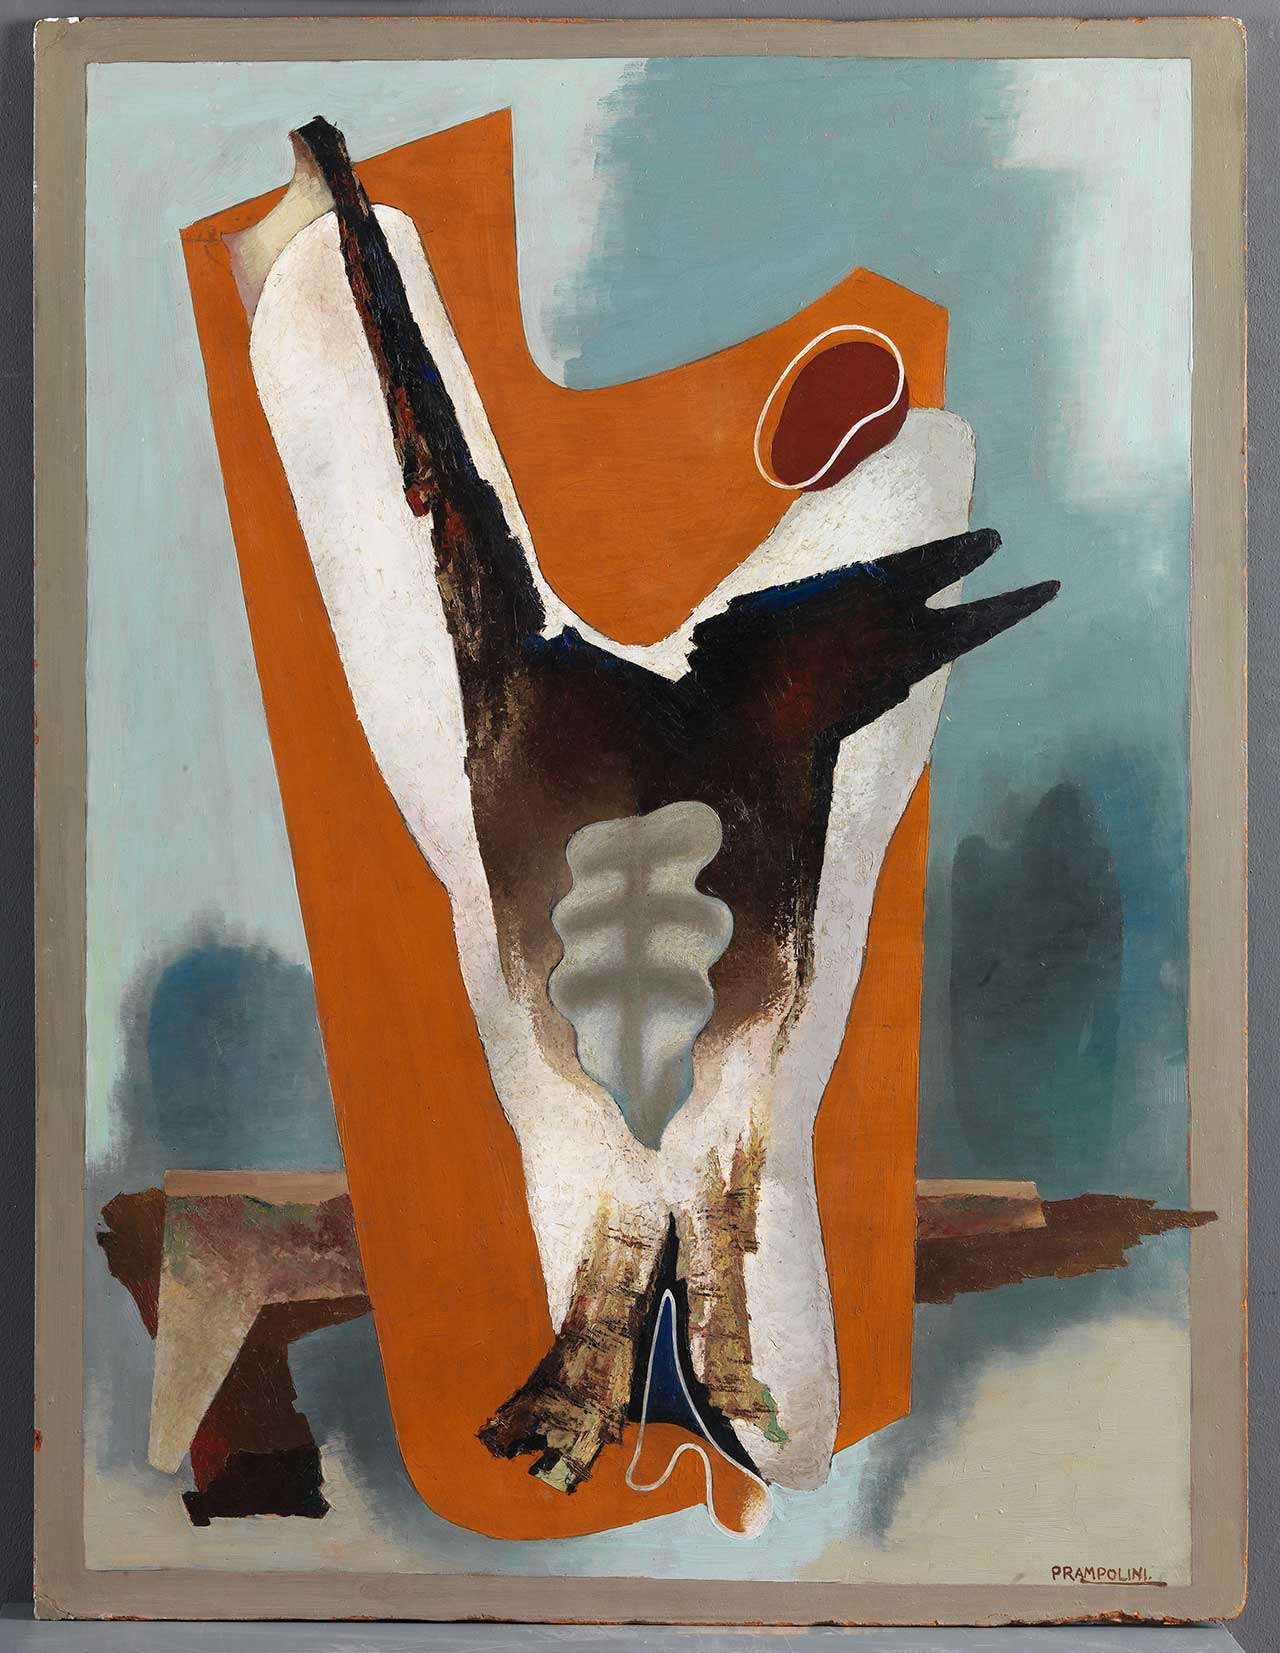 Enrico Prampolini, I funerali del romanticismo: trasfigurazione estetica, 1934, oil on masonite, 117 x 89,5 cm. MART, Museum of modern and contemporary art of Trento and Rovereto, collection Volker W. Feierabend MART - Photo archive and Media Library.